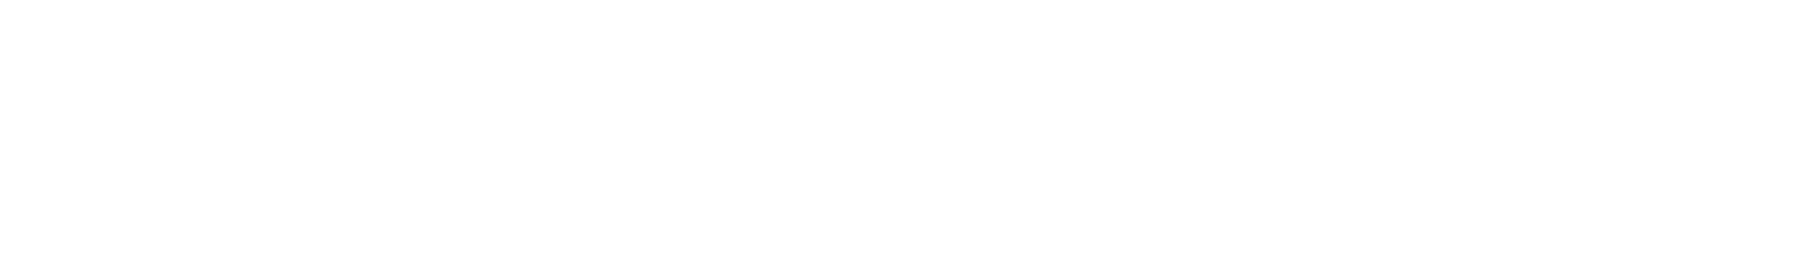 snare06